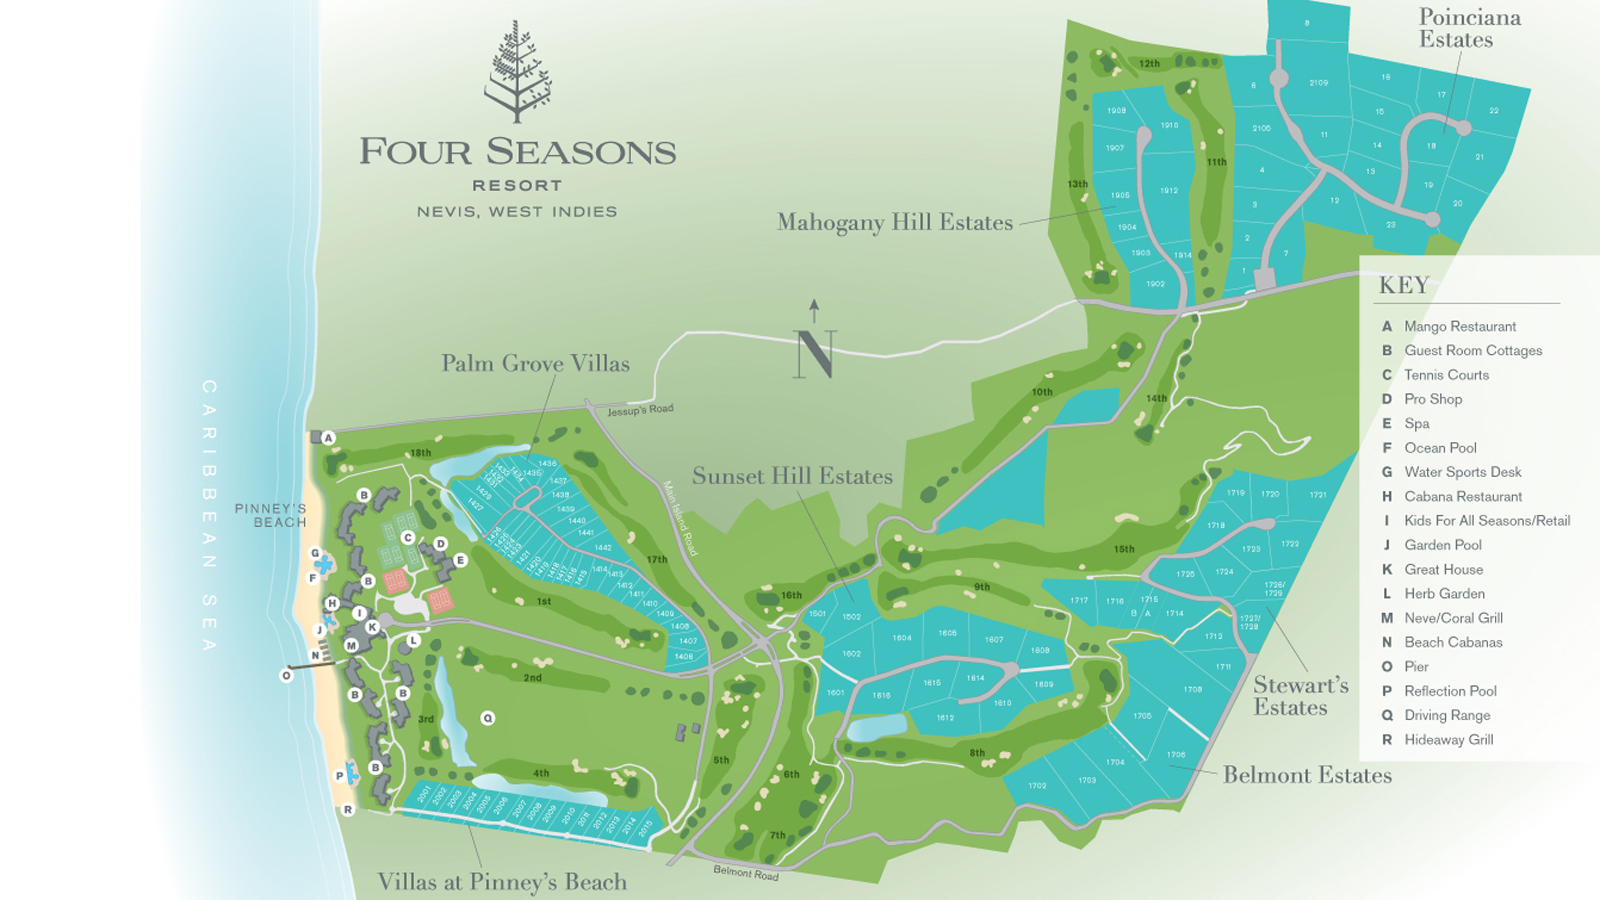 Resort Map of Four Seasons Resort Nevis